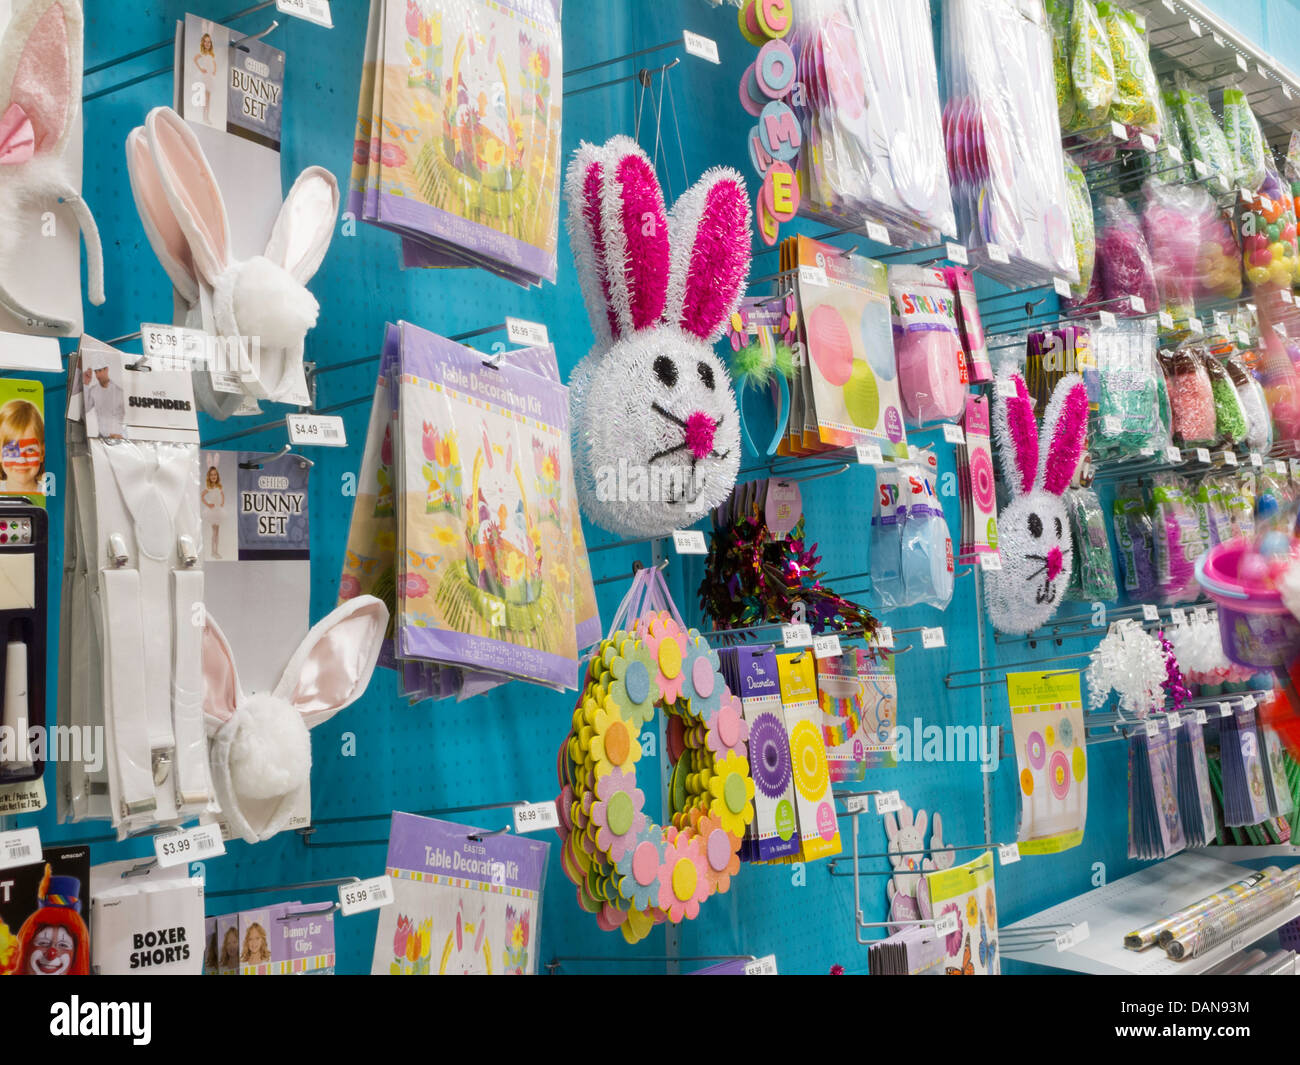 Traditional Easter Decorations Display, Party City, NYC